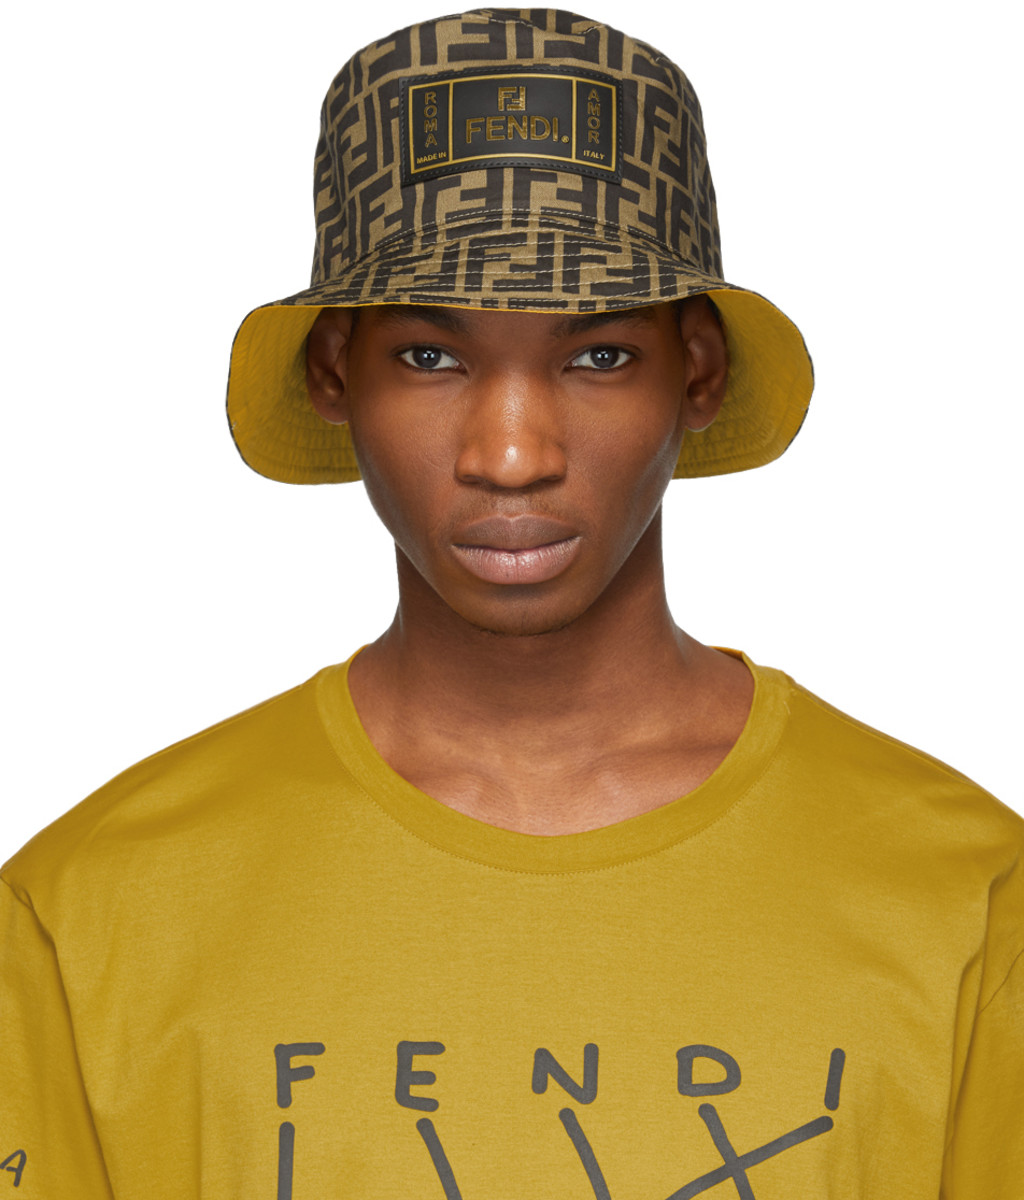 d52db378a7f1 Fendi for Men SS19 Collection